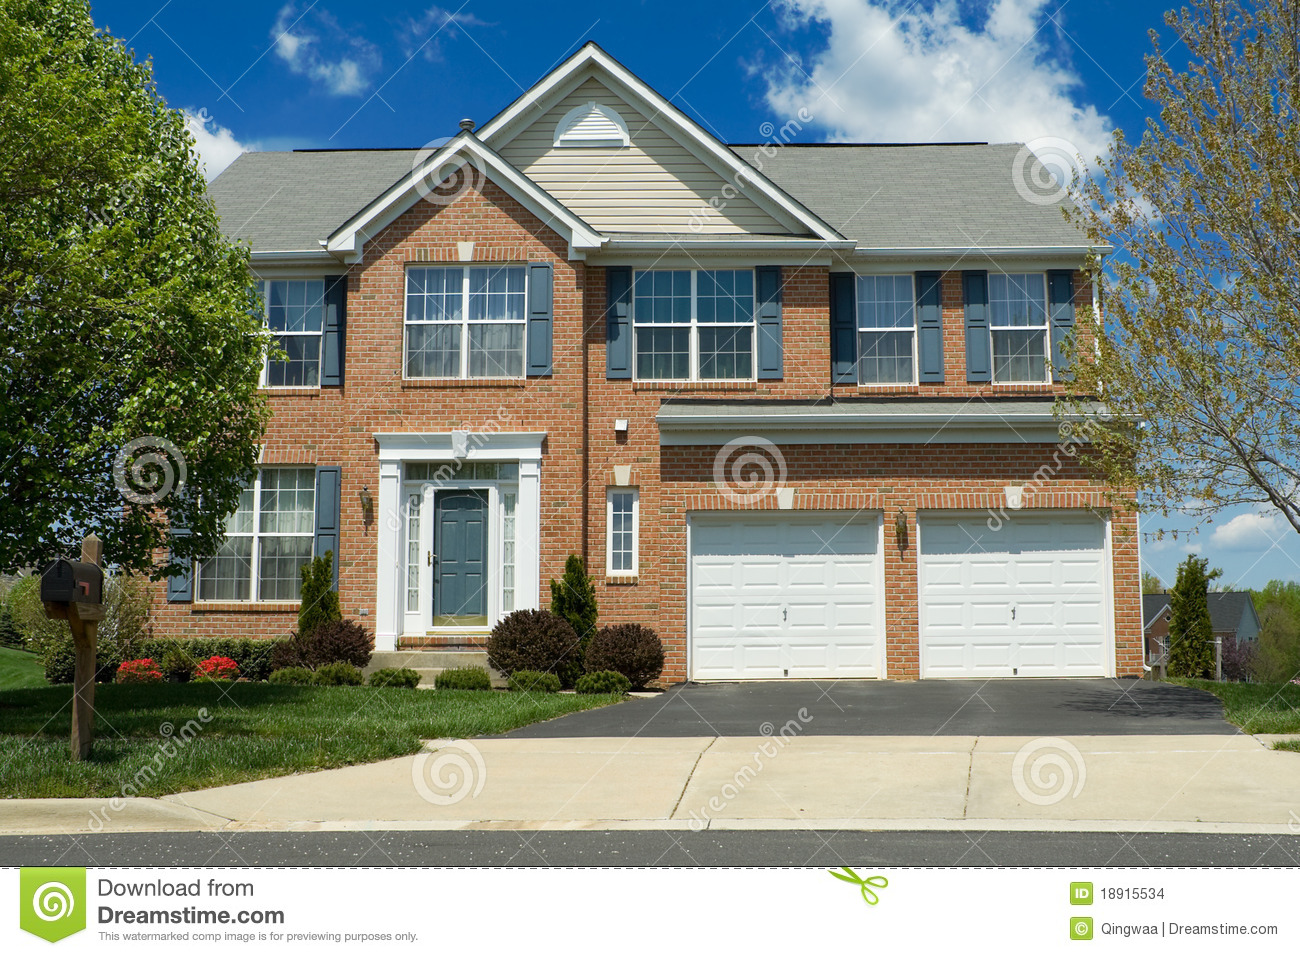 Front View Brick Single Family Home Suburban MD Stock